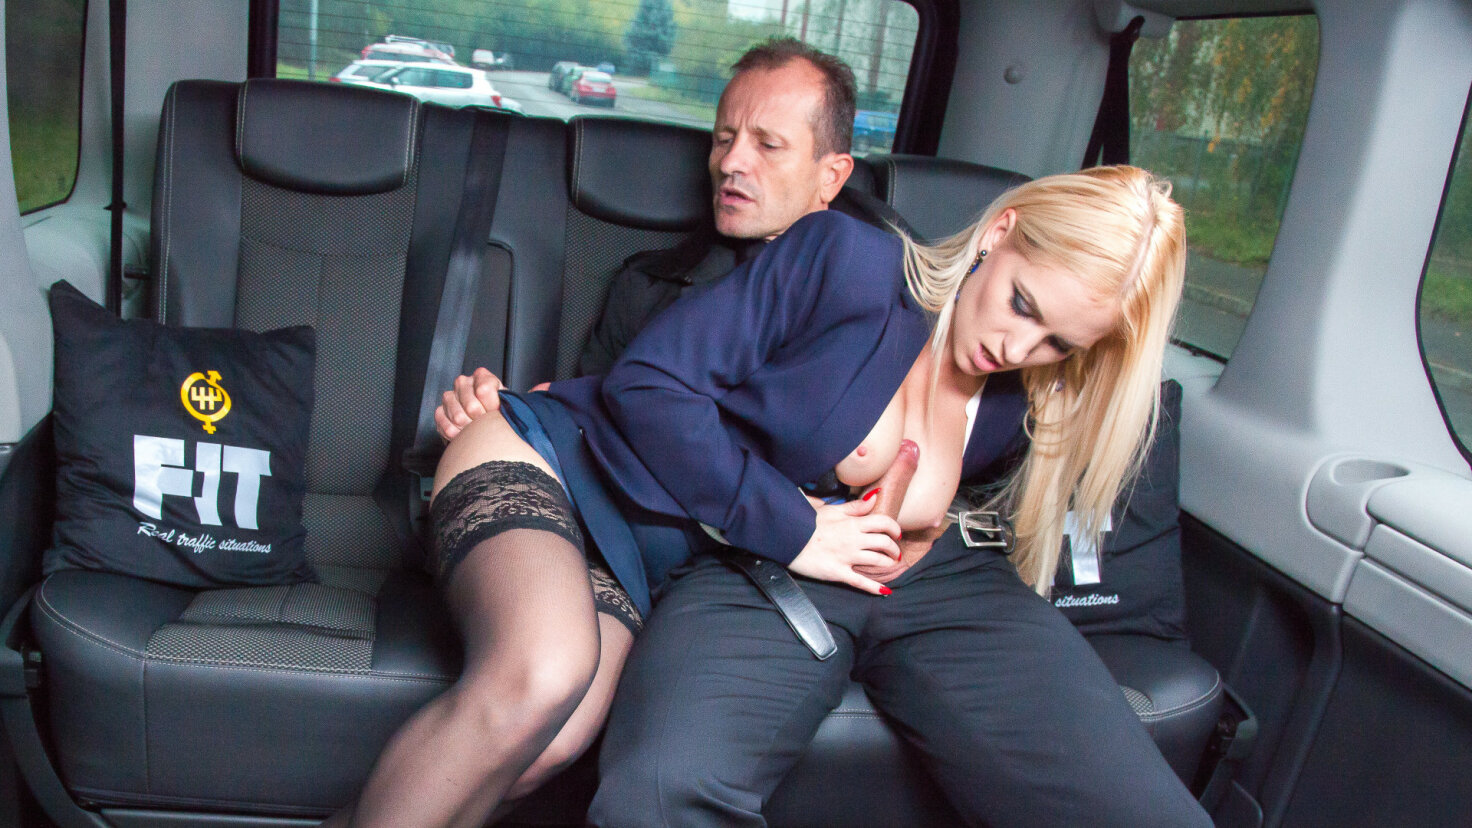 Naughty blonde Italian babe seduces driver and fucks him in traffic